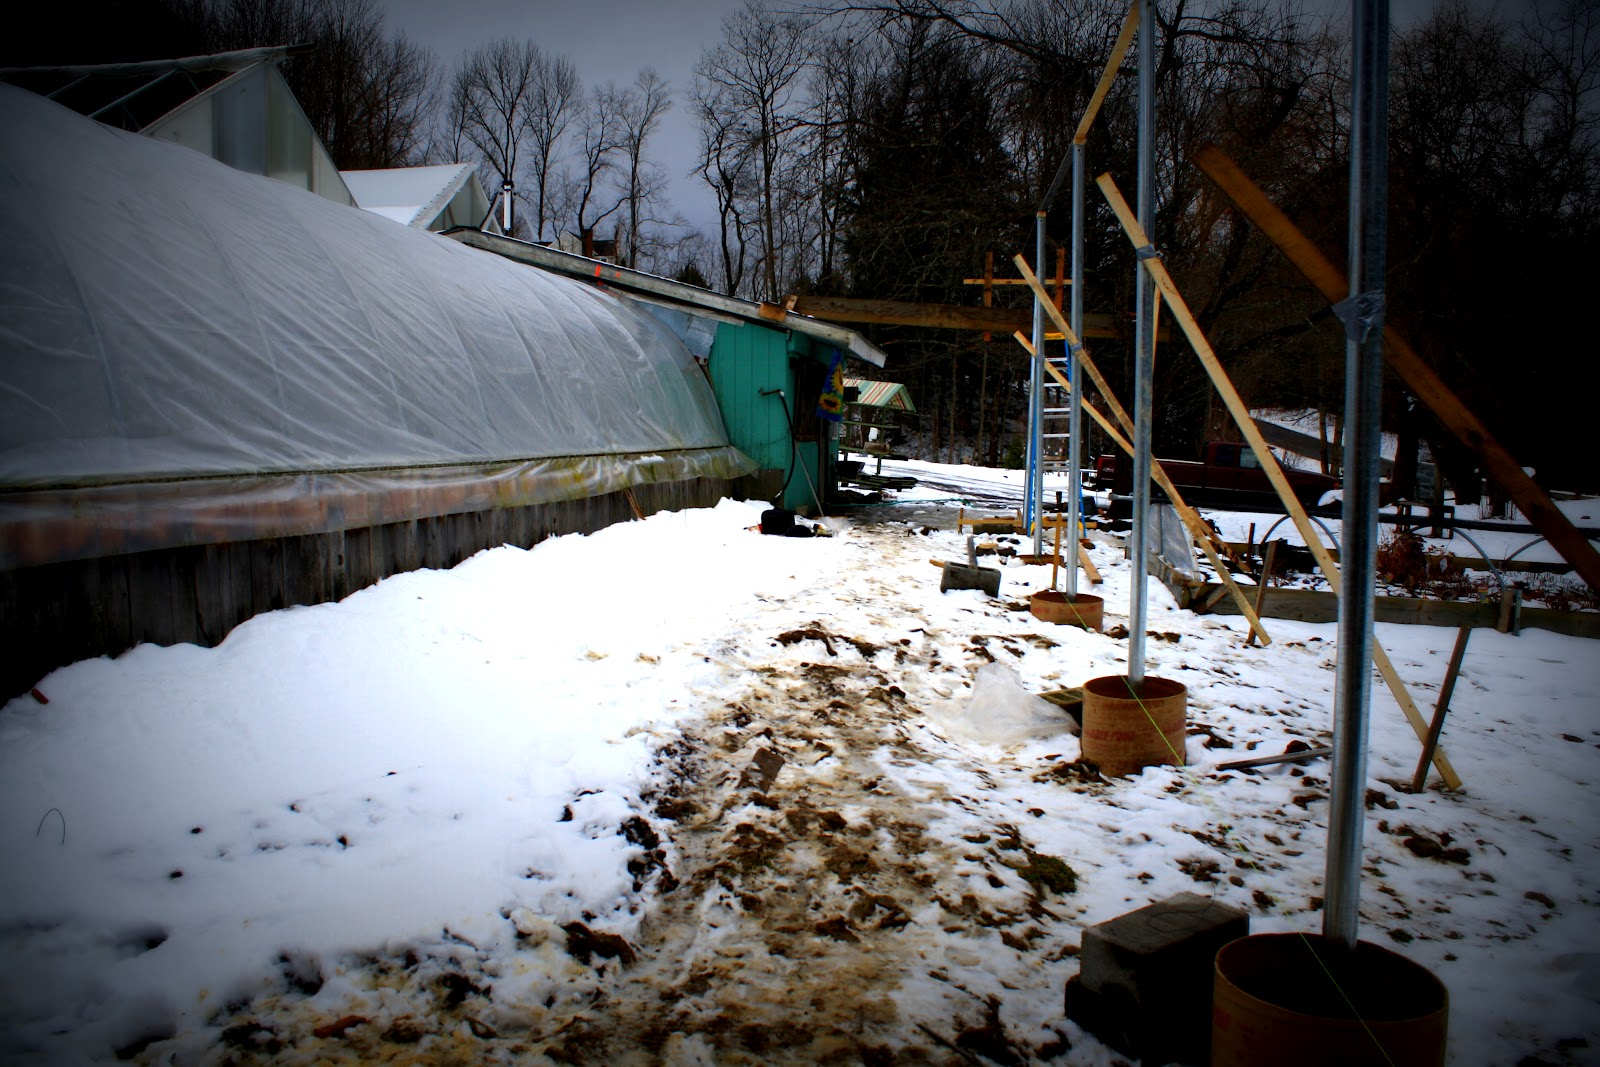 Winter 2012. During the mild winter, we were setting first posts of our new greenhouse café